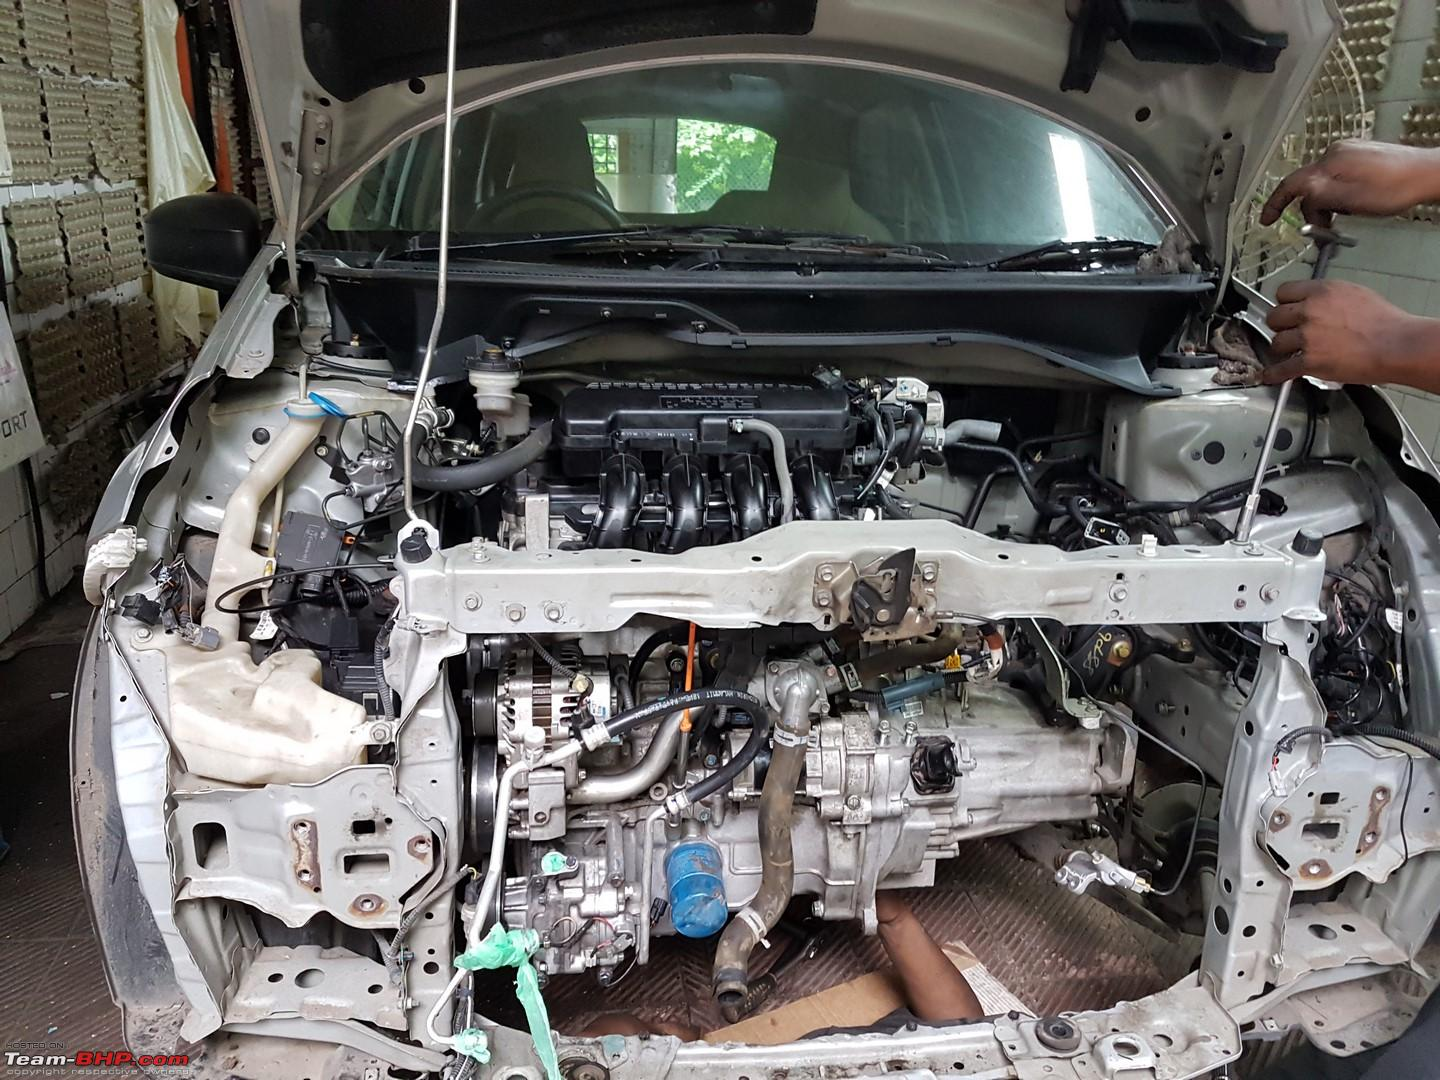 Honda Brio L Engine Swap Successful Page  Now With RD ECU - Wiring diagram honda l15a